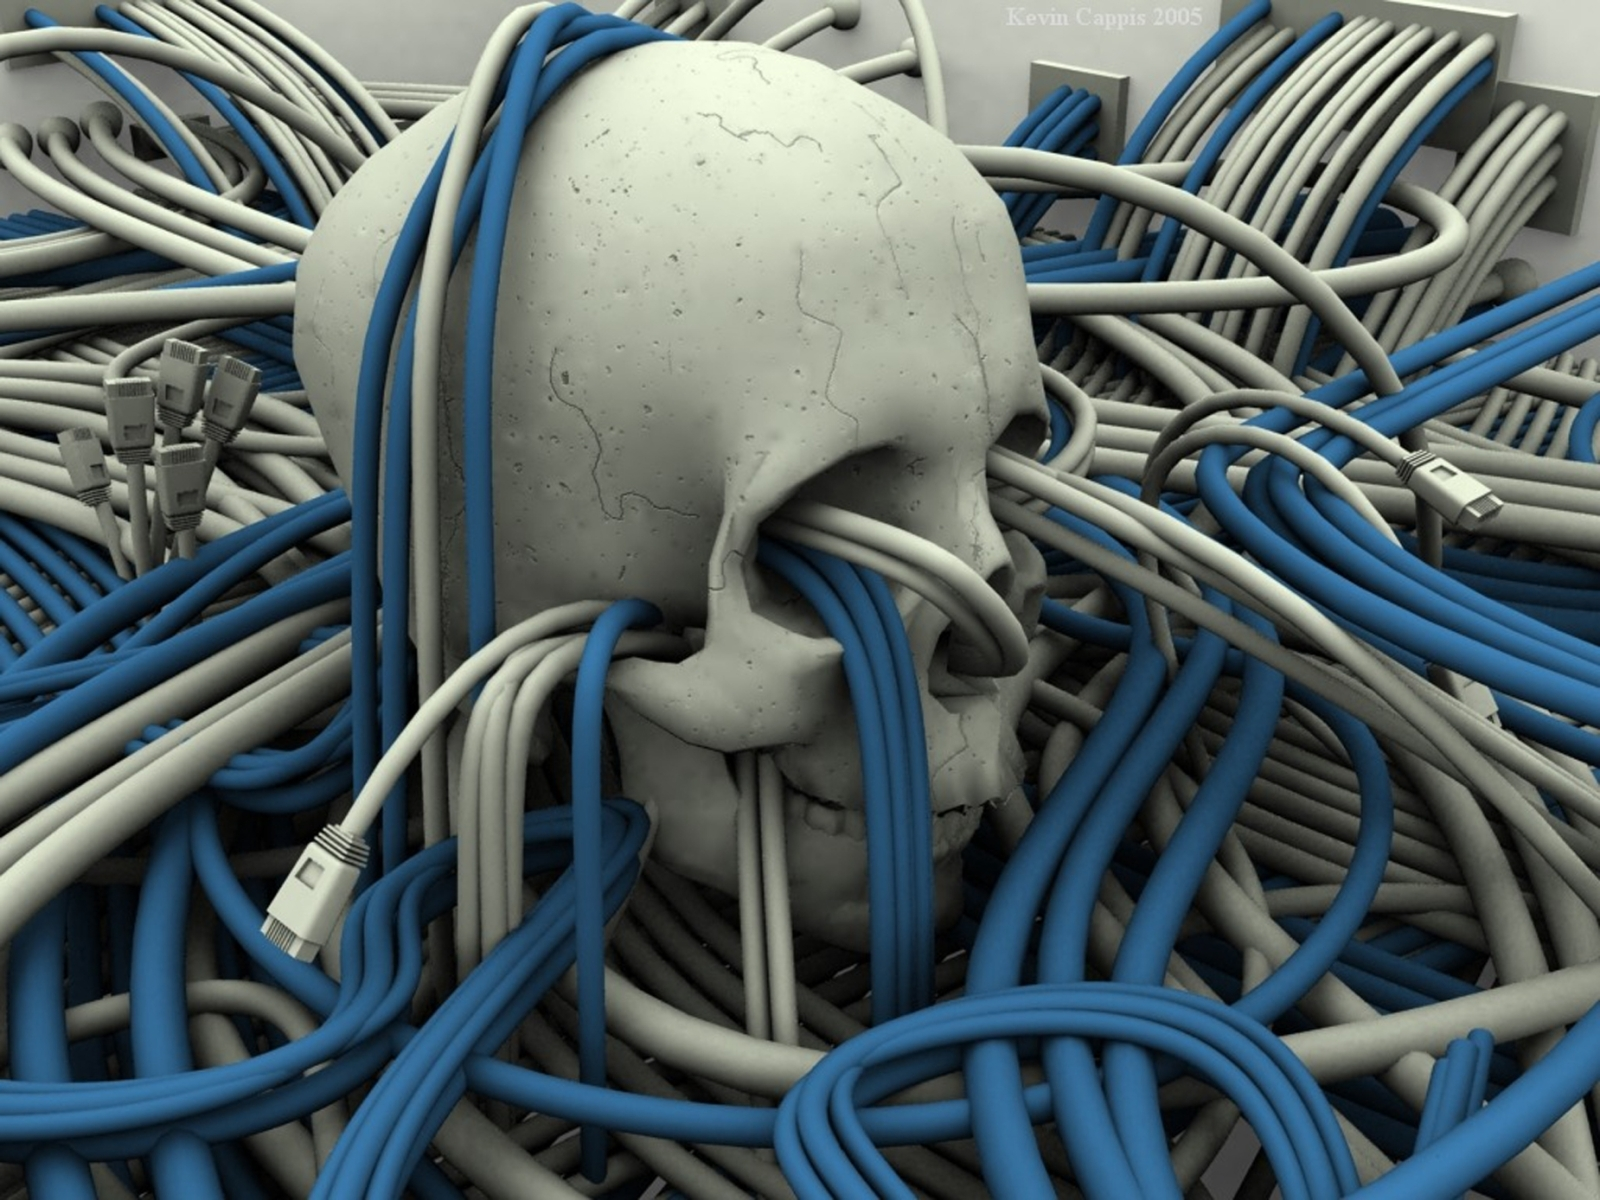 computer technician tangled in wires